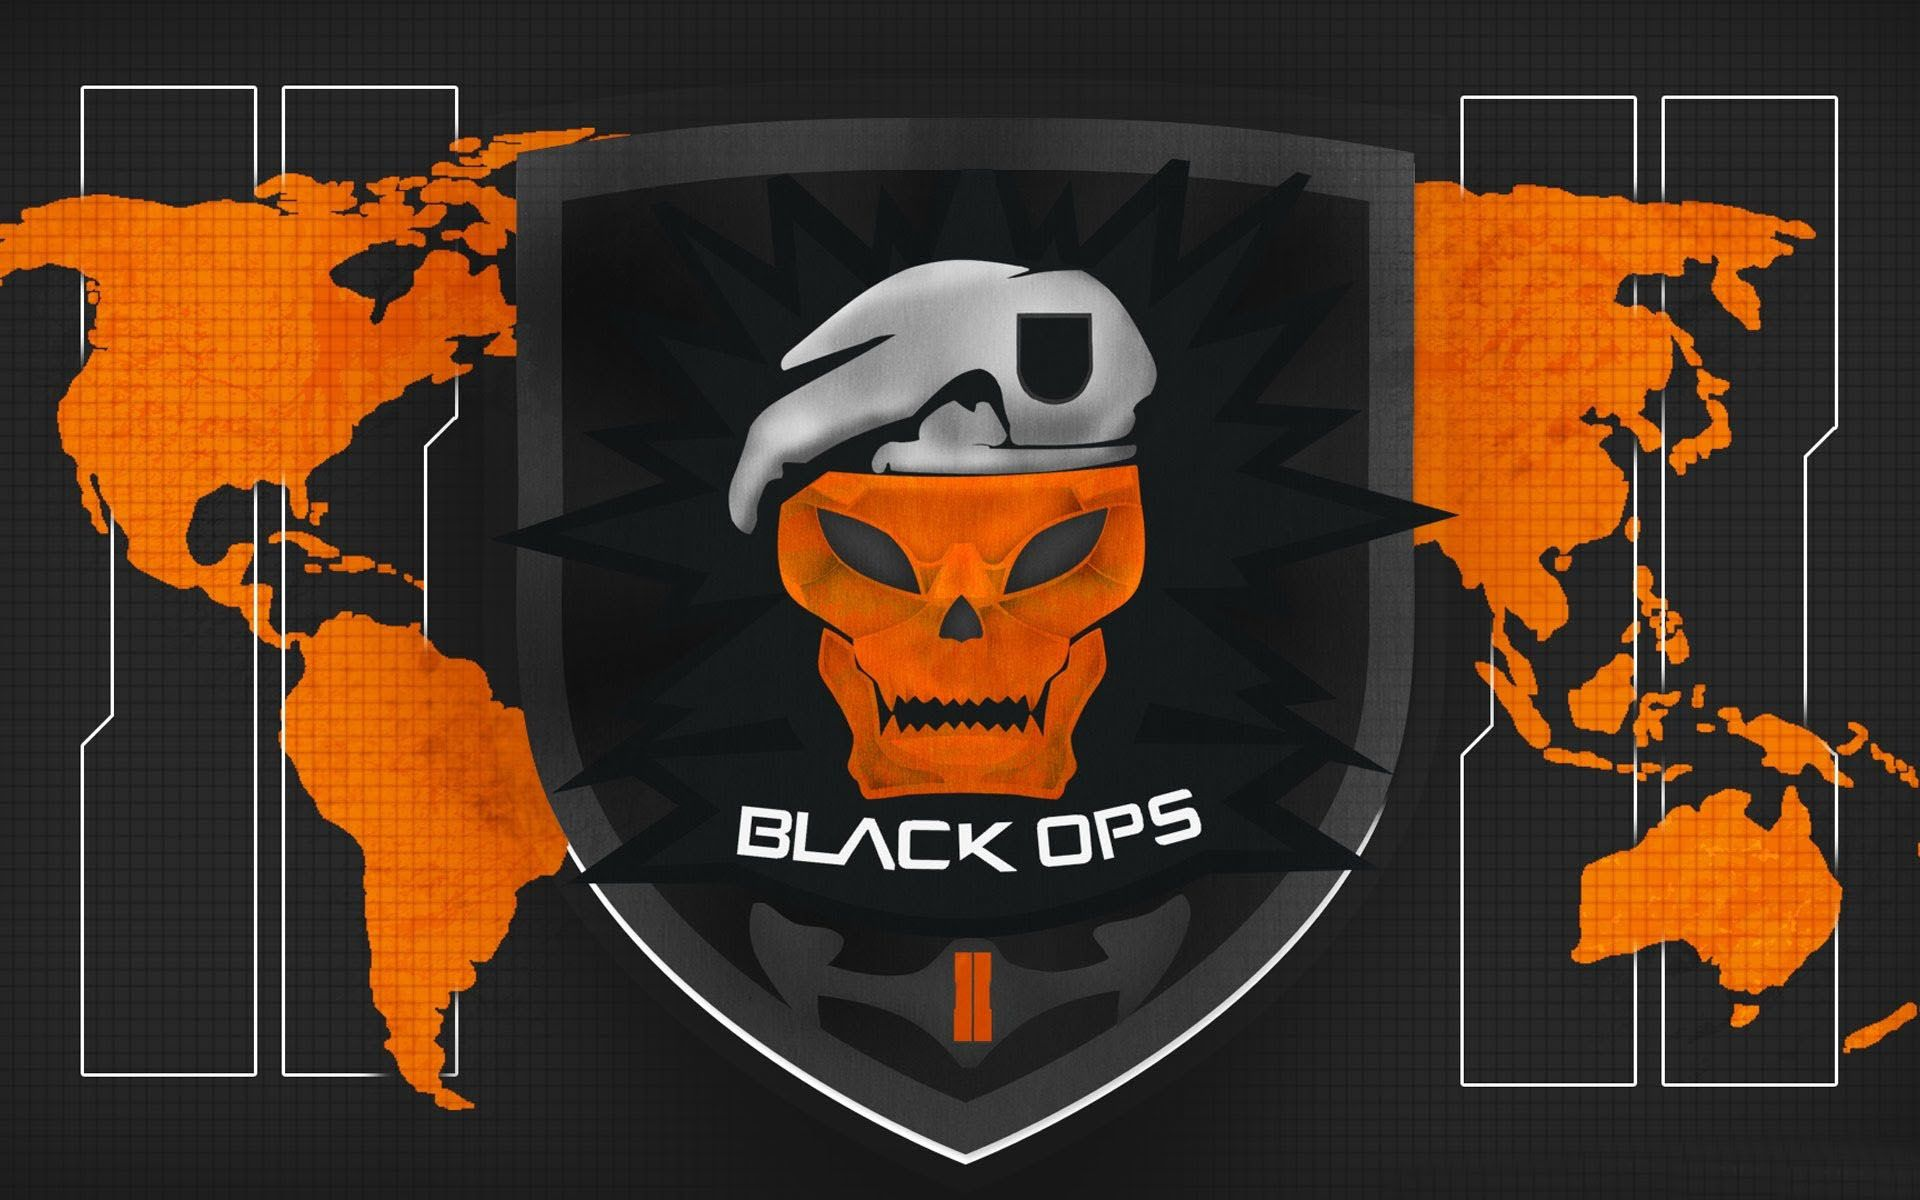 Call Of Duty Black Ops 2 Video Game Wallpaper 1920x1200 163069